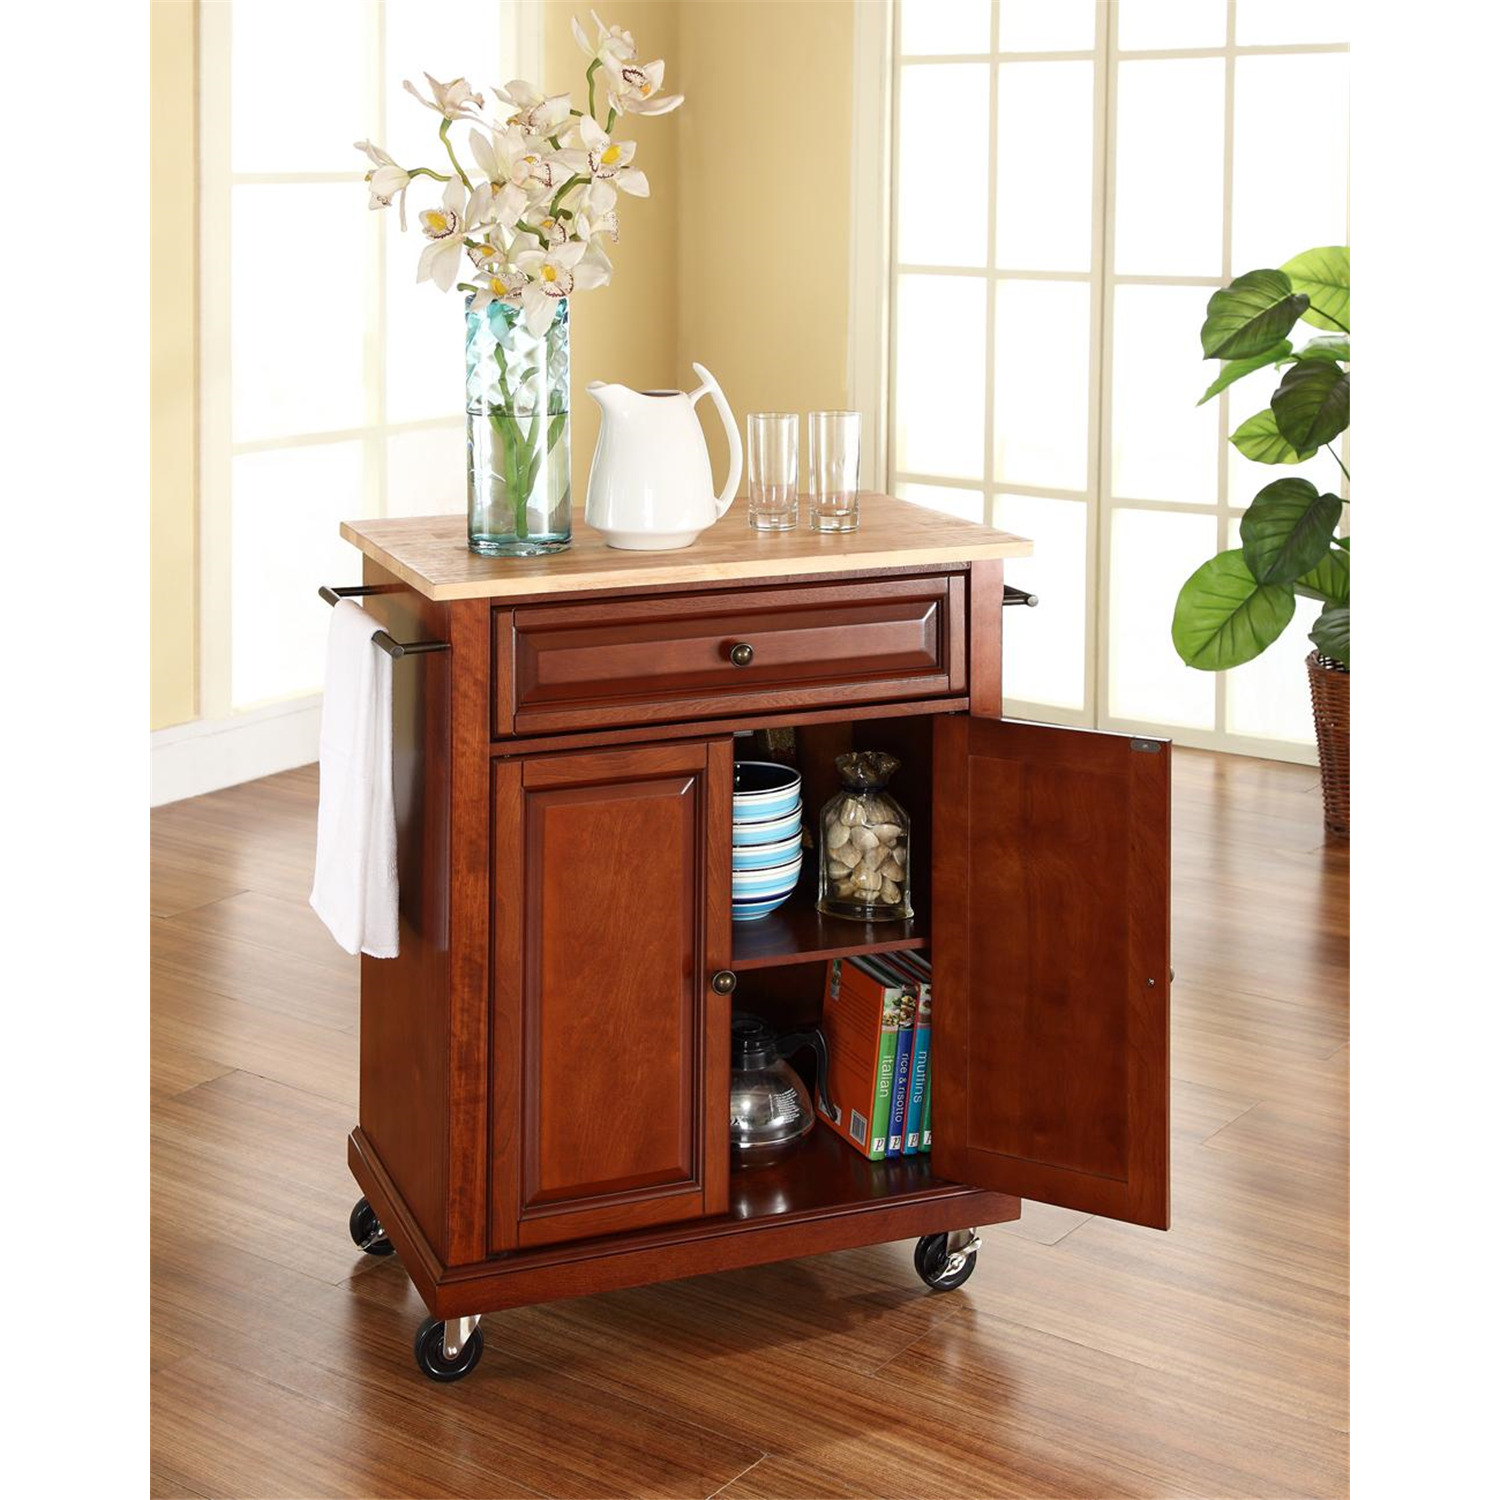 Portable Kitchen Cart/Island - From $252.00 to $339.00 ...